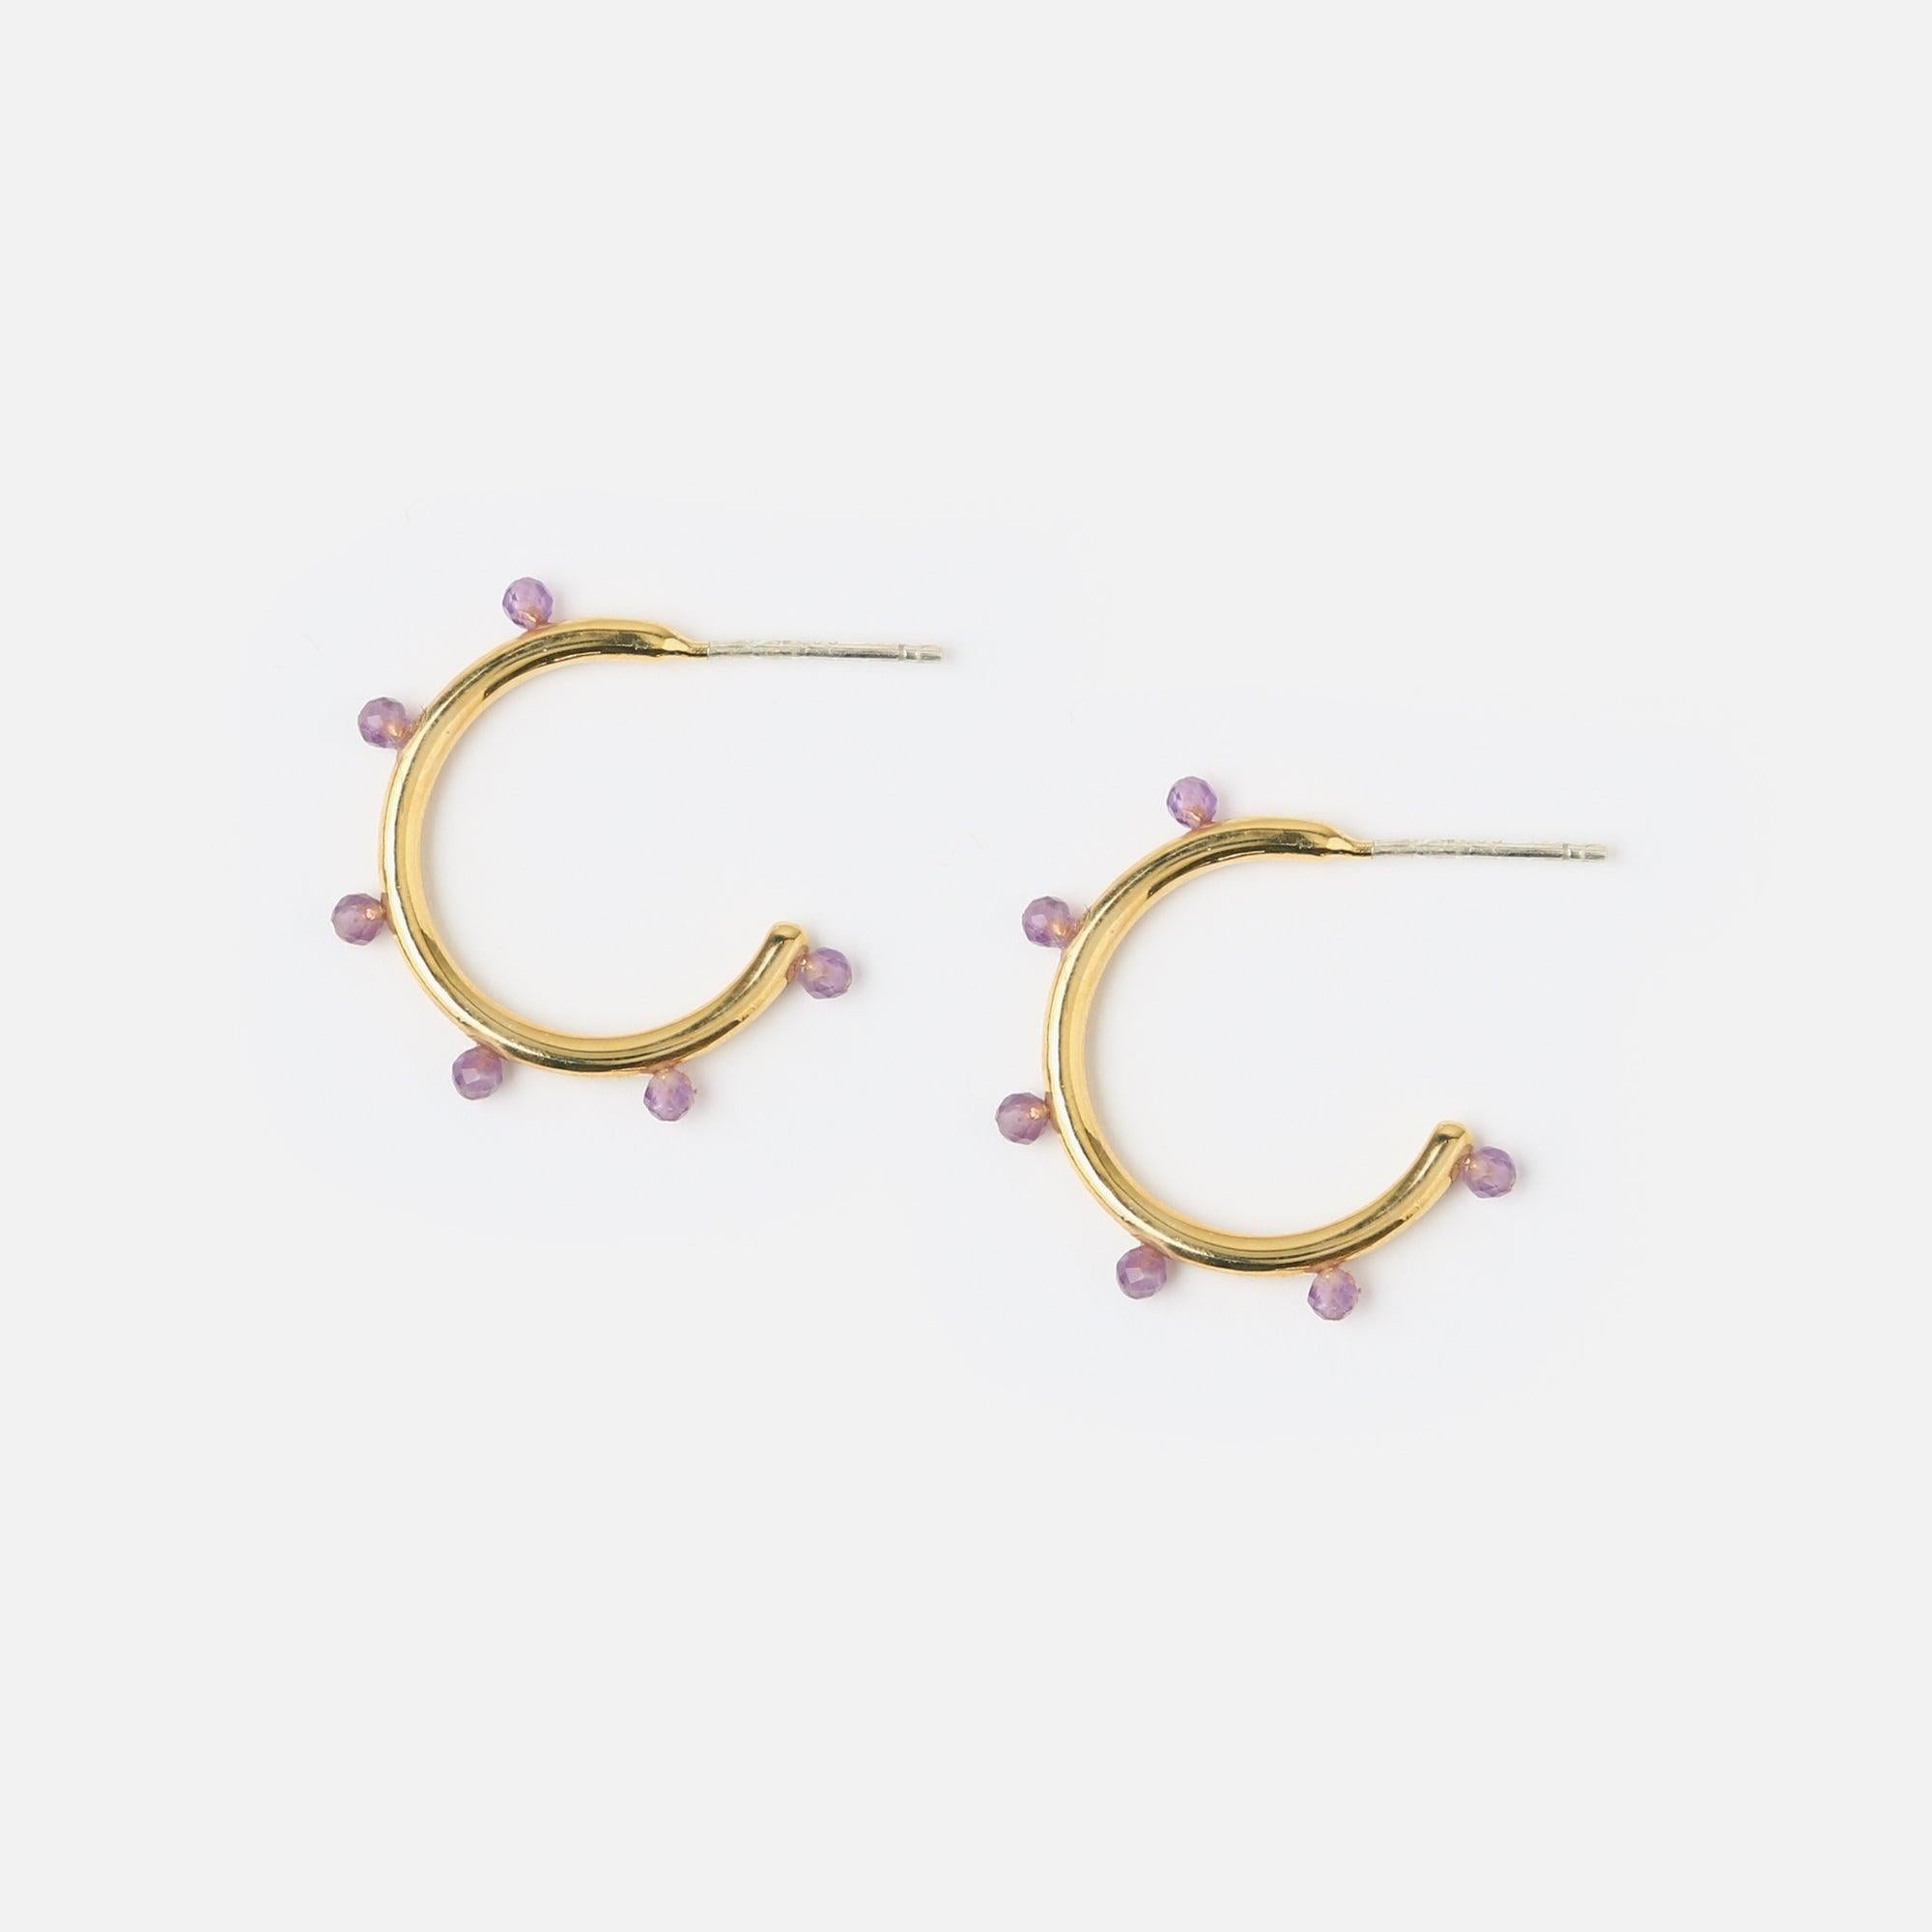 Amethyst Beaded Hoop Earrings